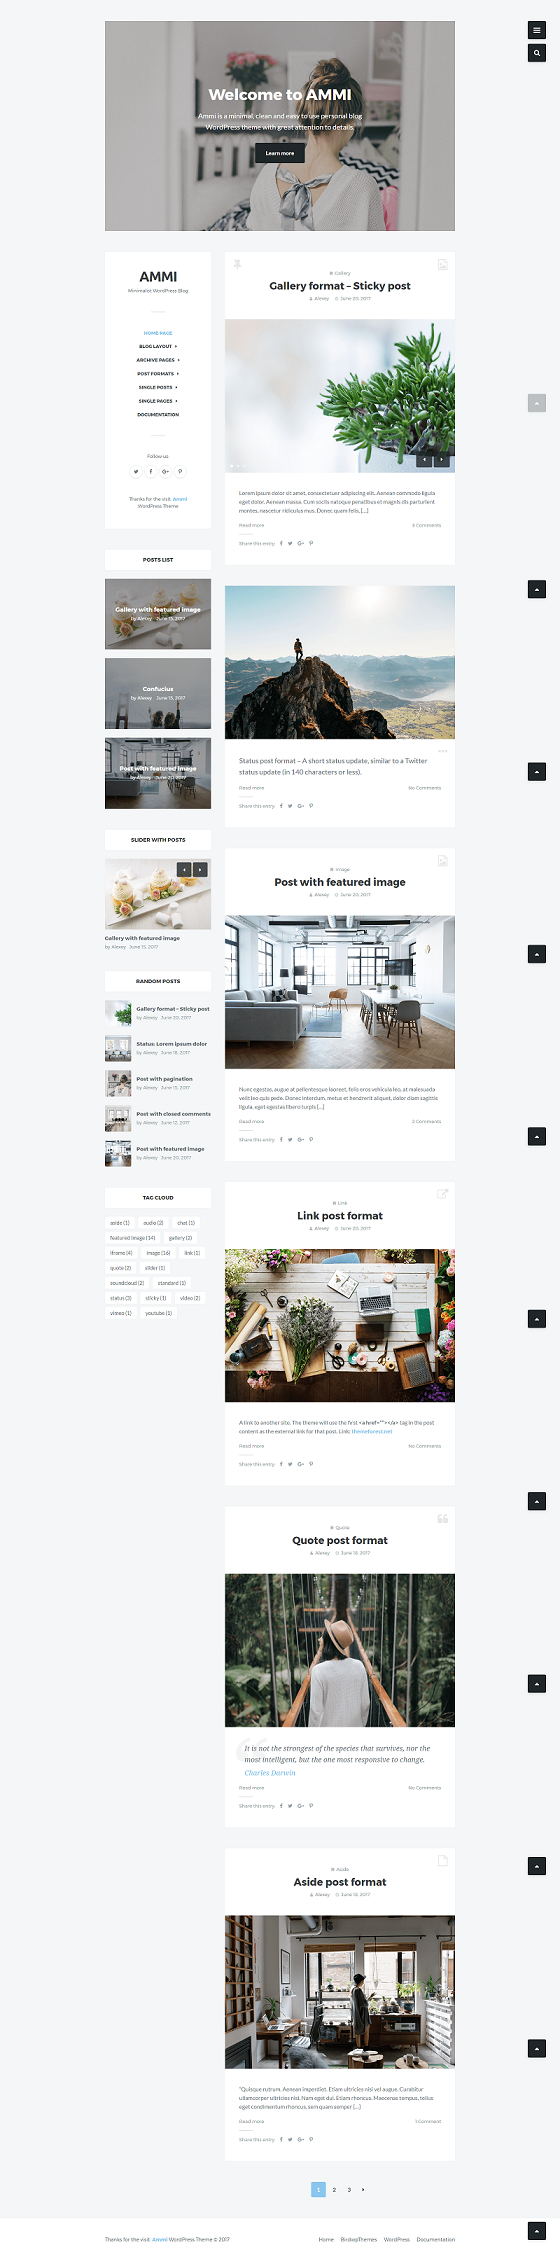 Ammi – Most Popular Minimalist Word press Blog Theme